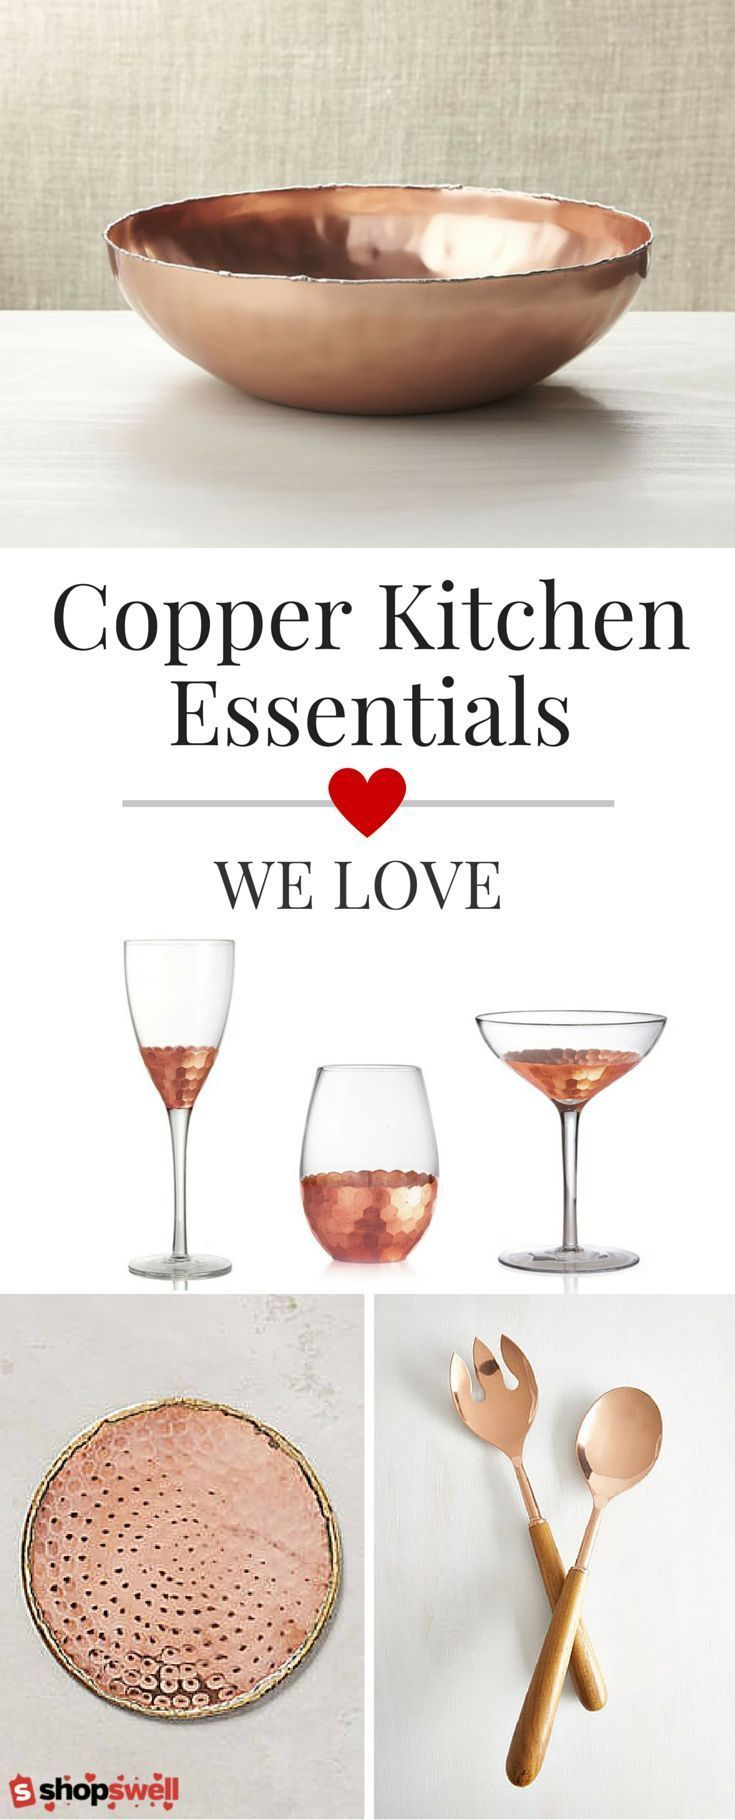 43 of our favorite copper kitchen essentials and at $50 or less you can afford to splurge a little. Start creating your copper kitchen now.